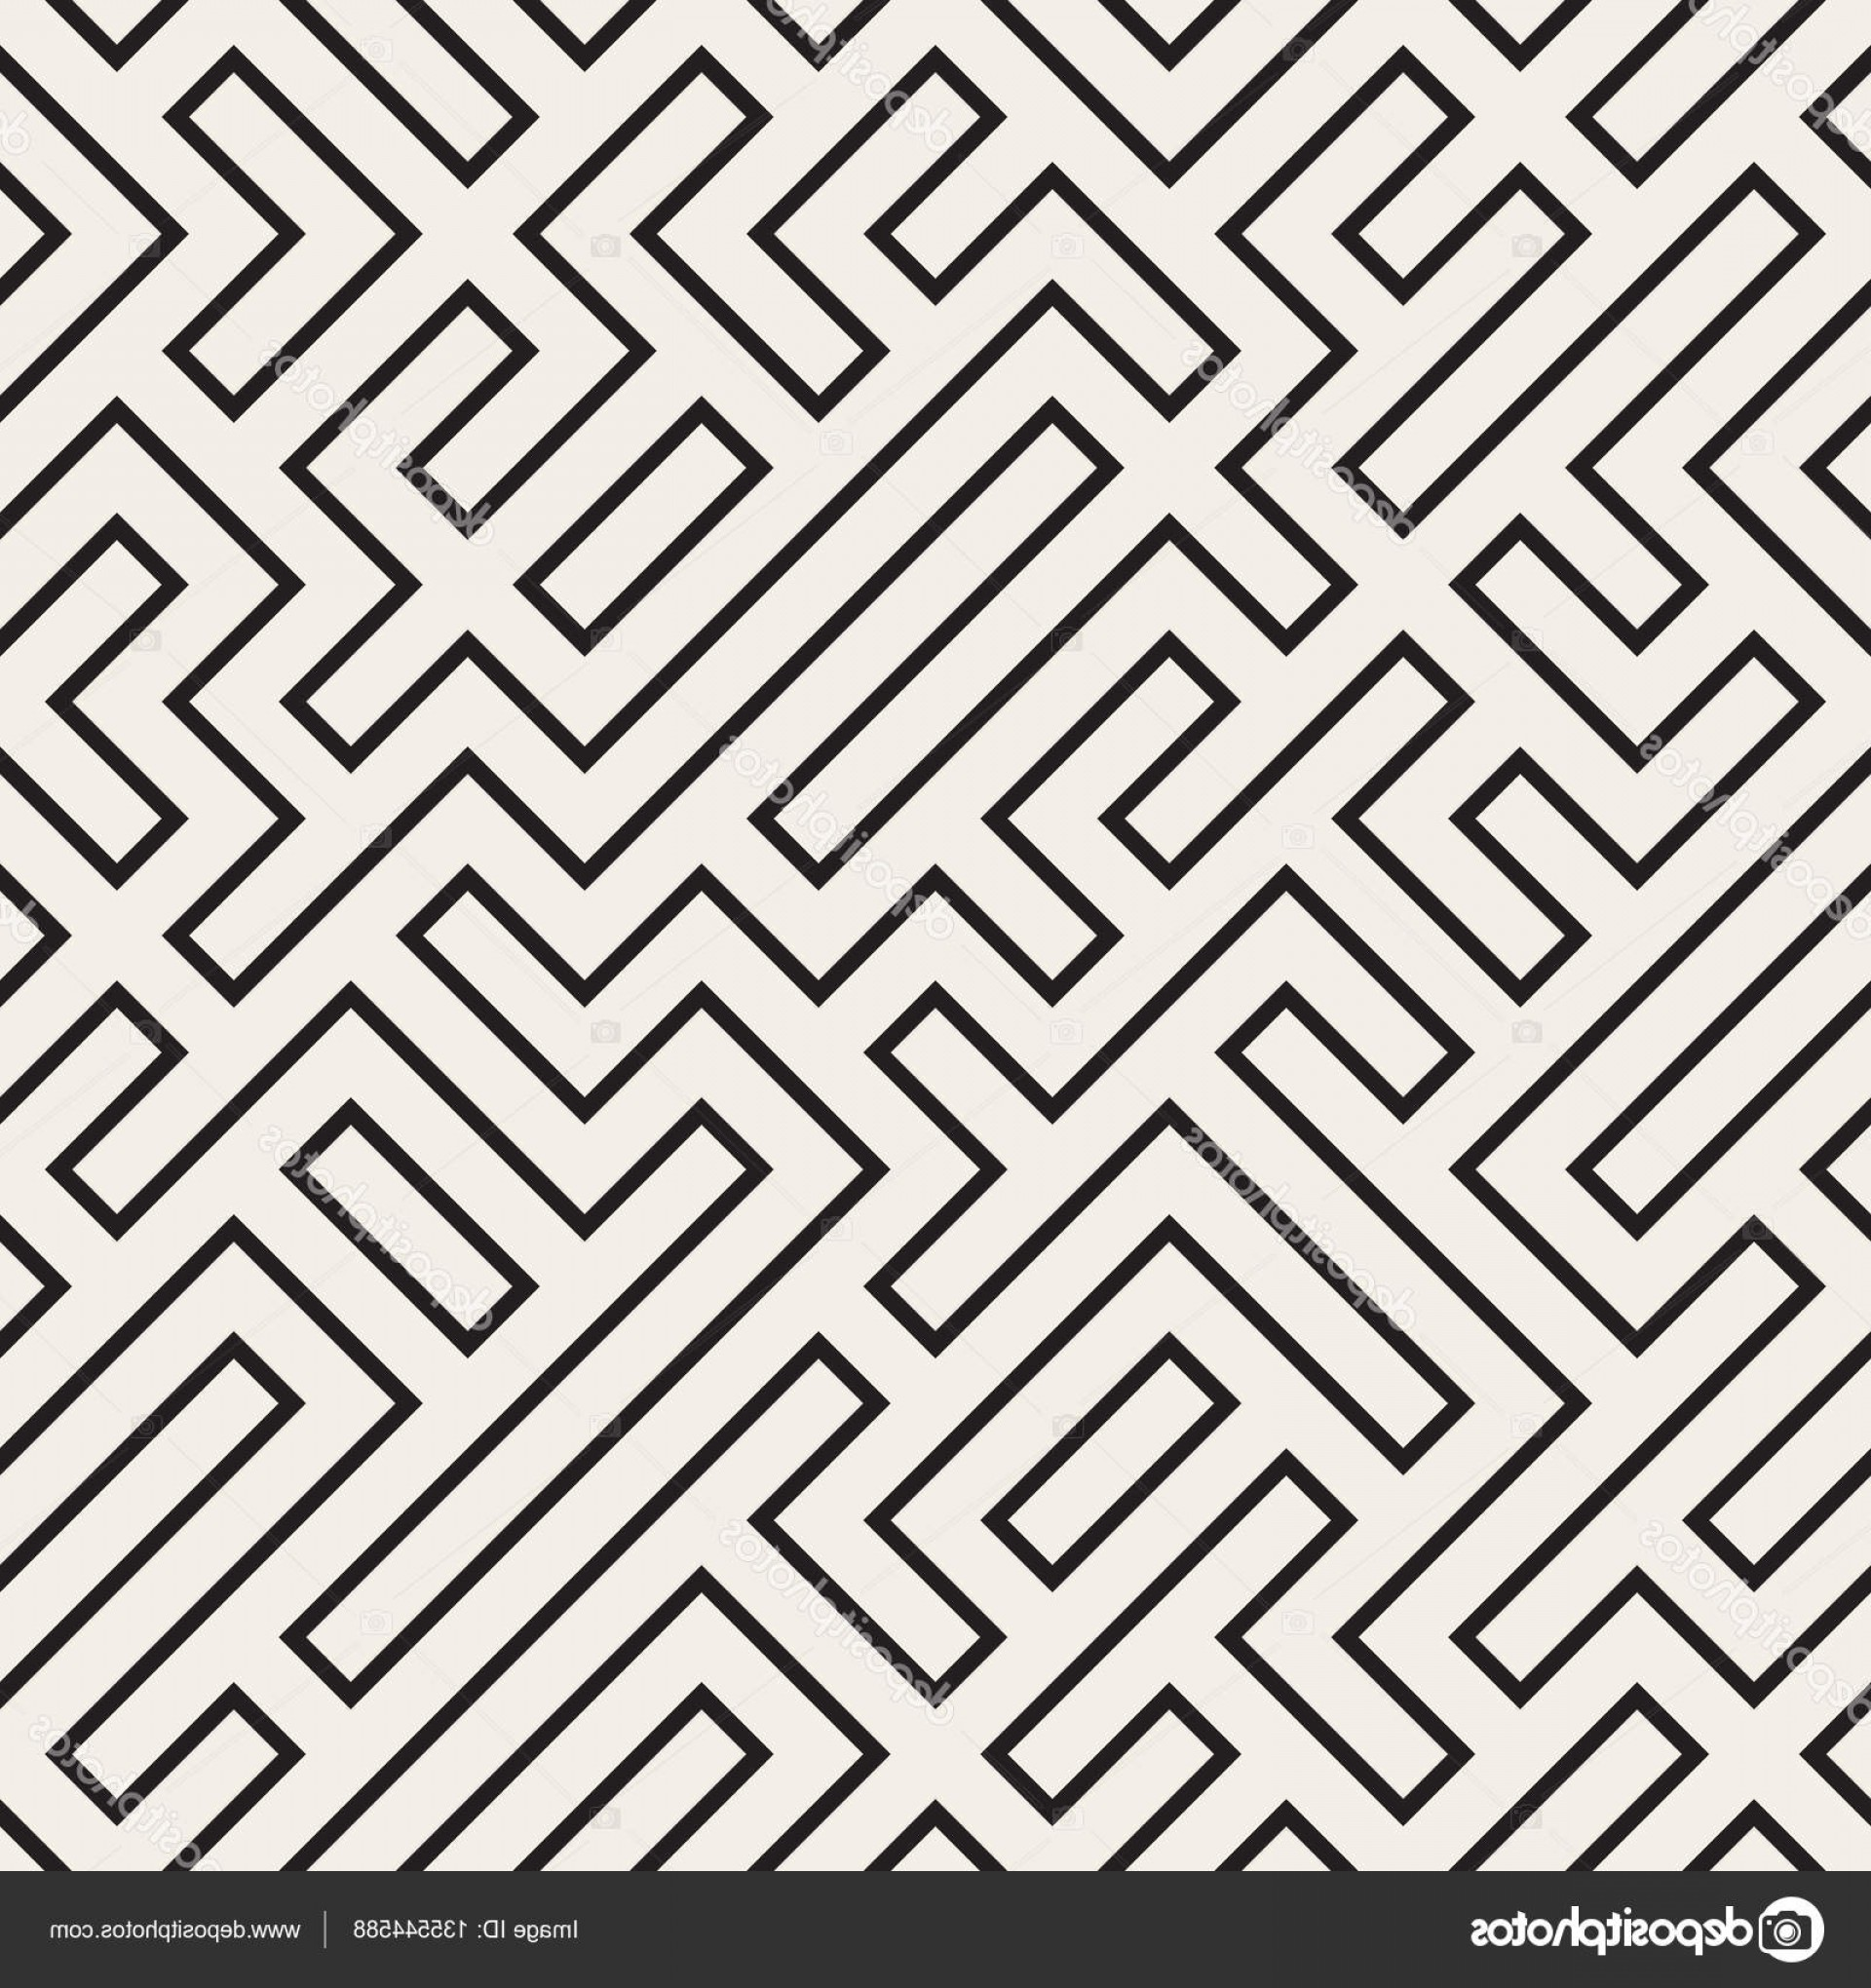 Black Abstract Lines Vector: Stock Illustration Irregular Maze Lines Vector Seamless